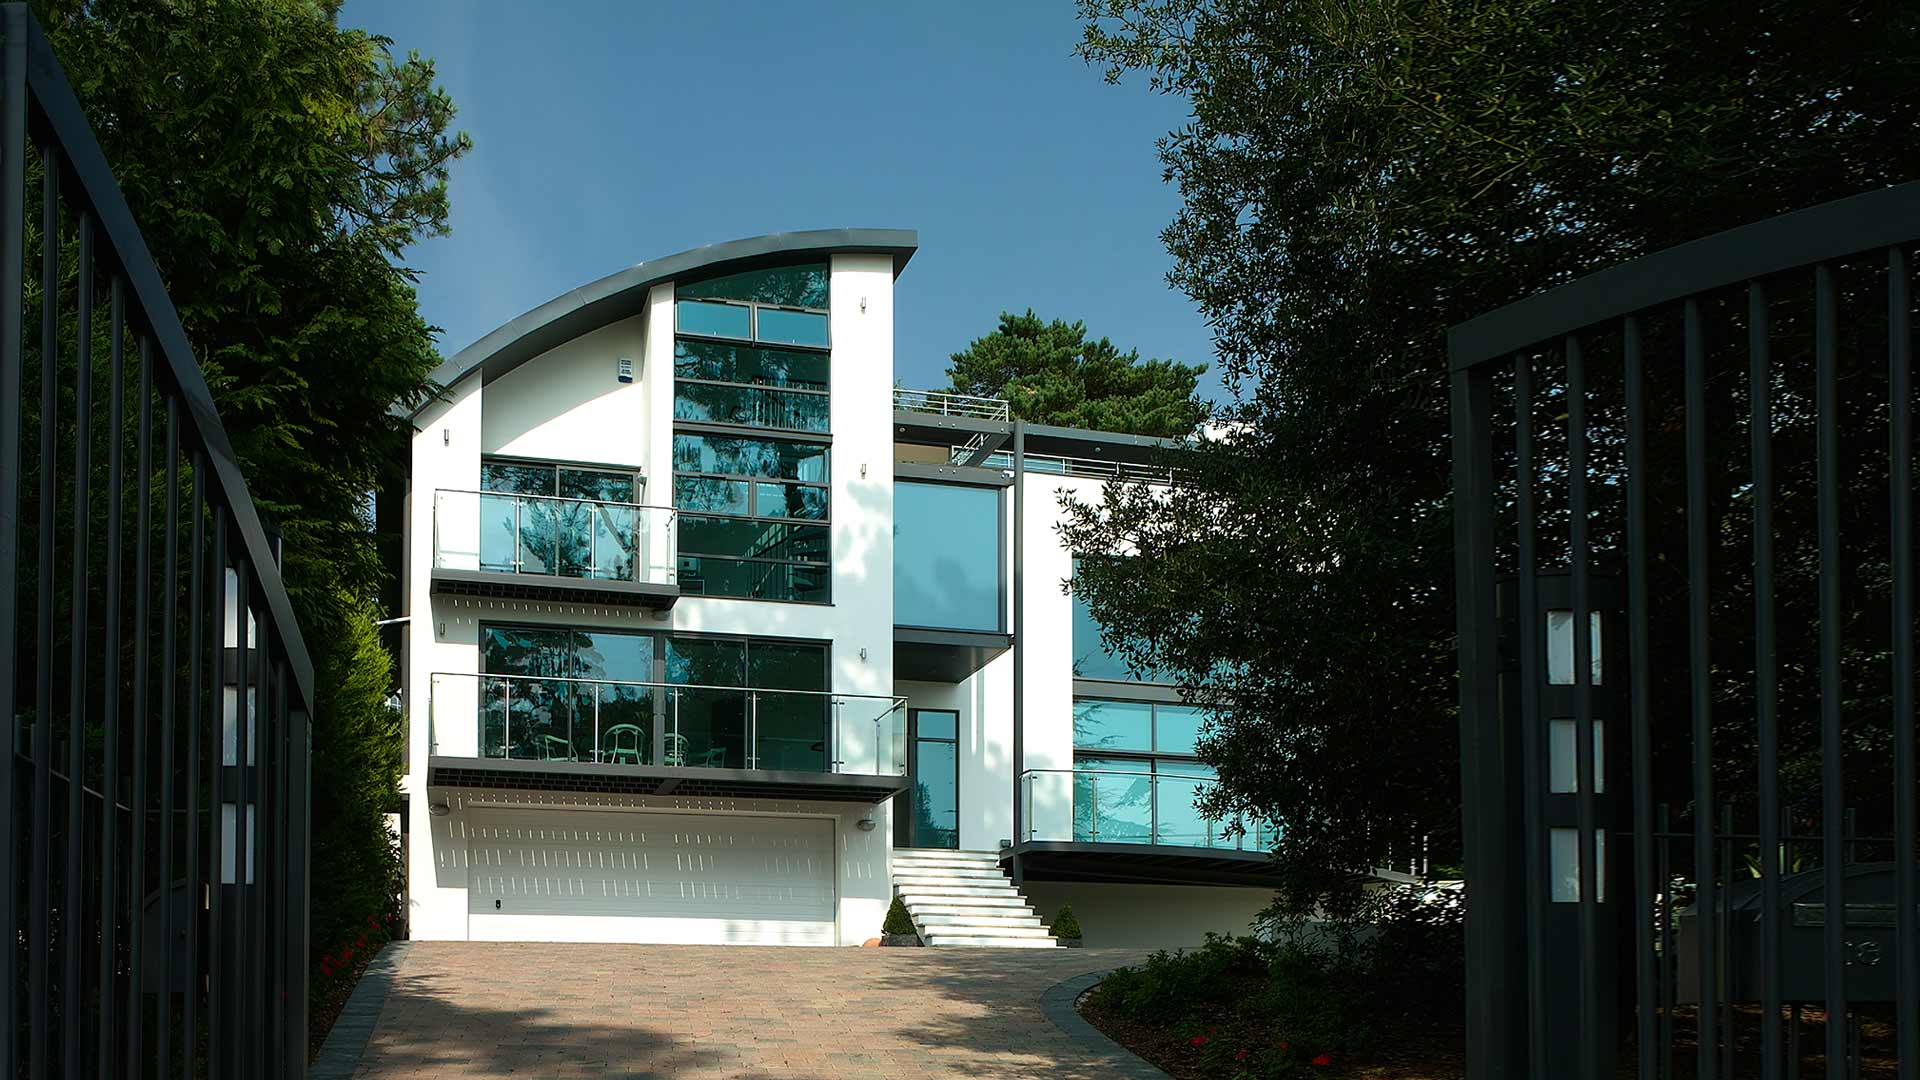 Lakeside road poole dorset western design architects - Architects poole dorset ...